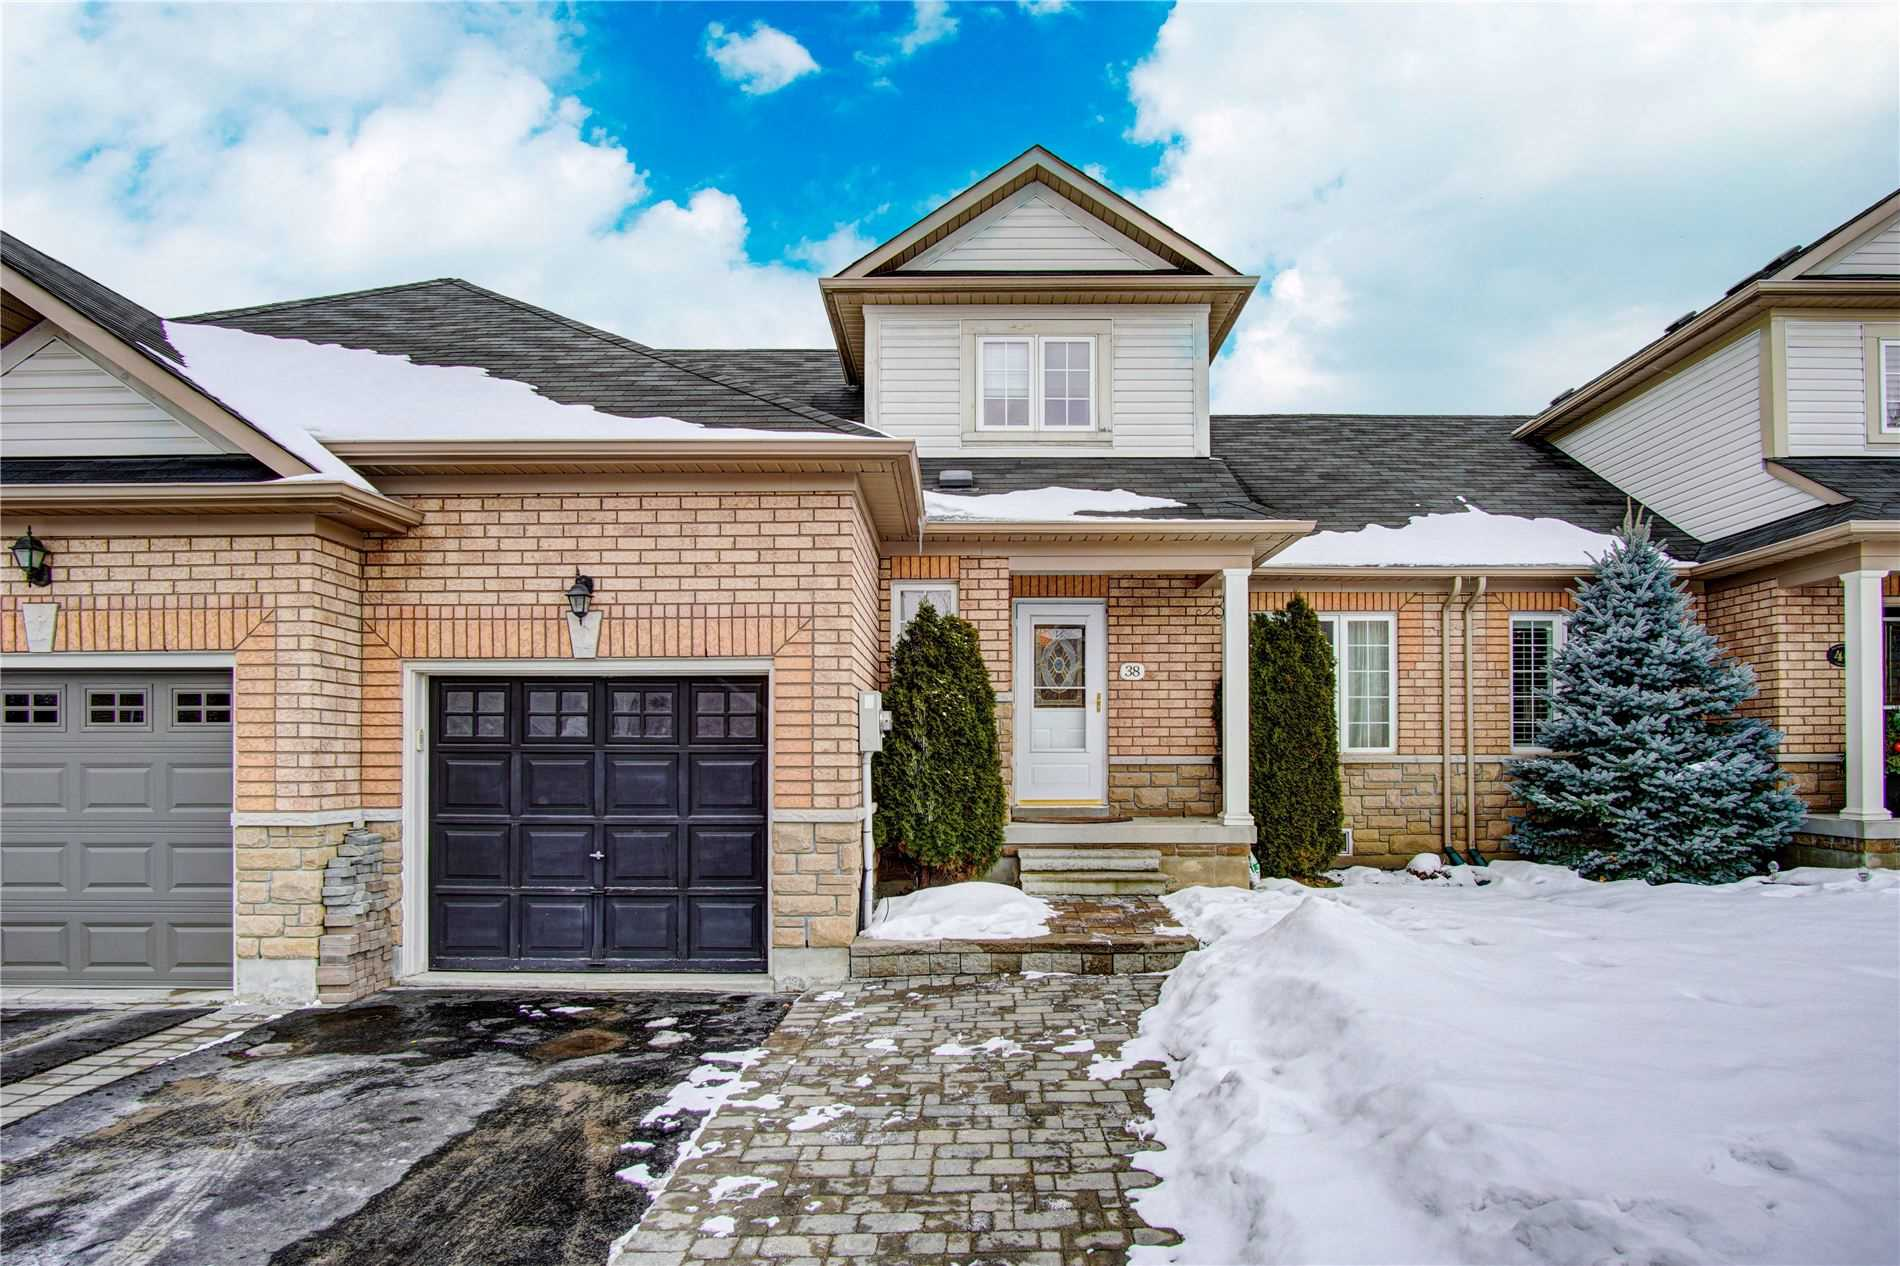 pictures of house for sale MLS: N5090058 located at 38 Meadows End Cres, Uxbridge L9P0A5